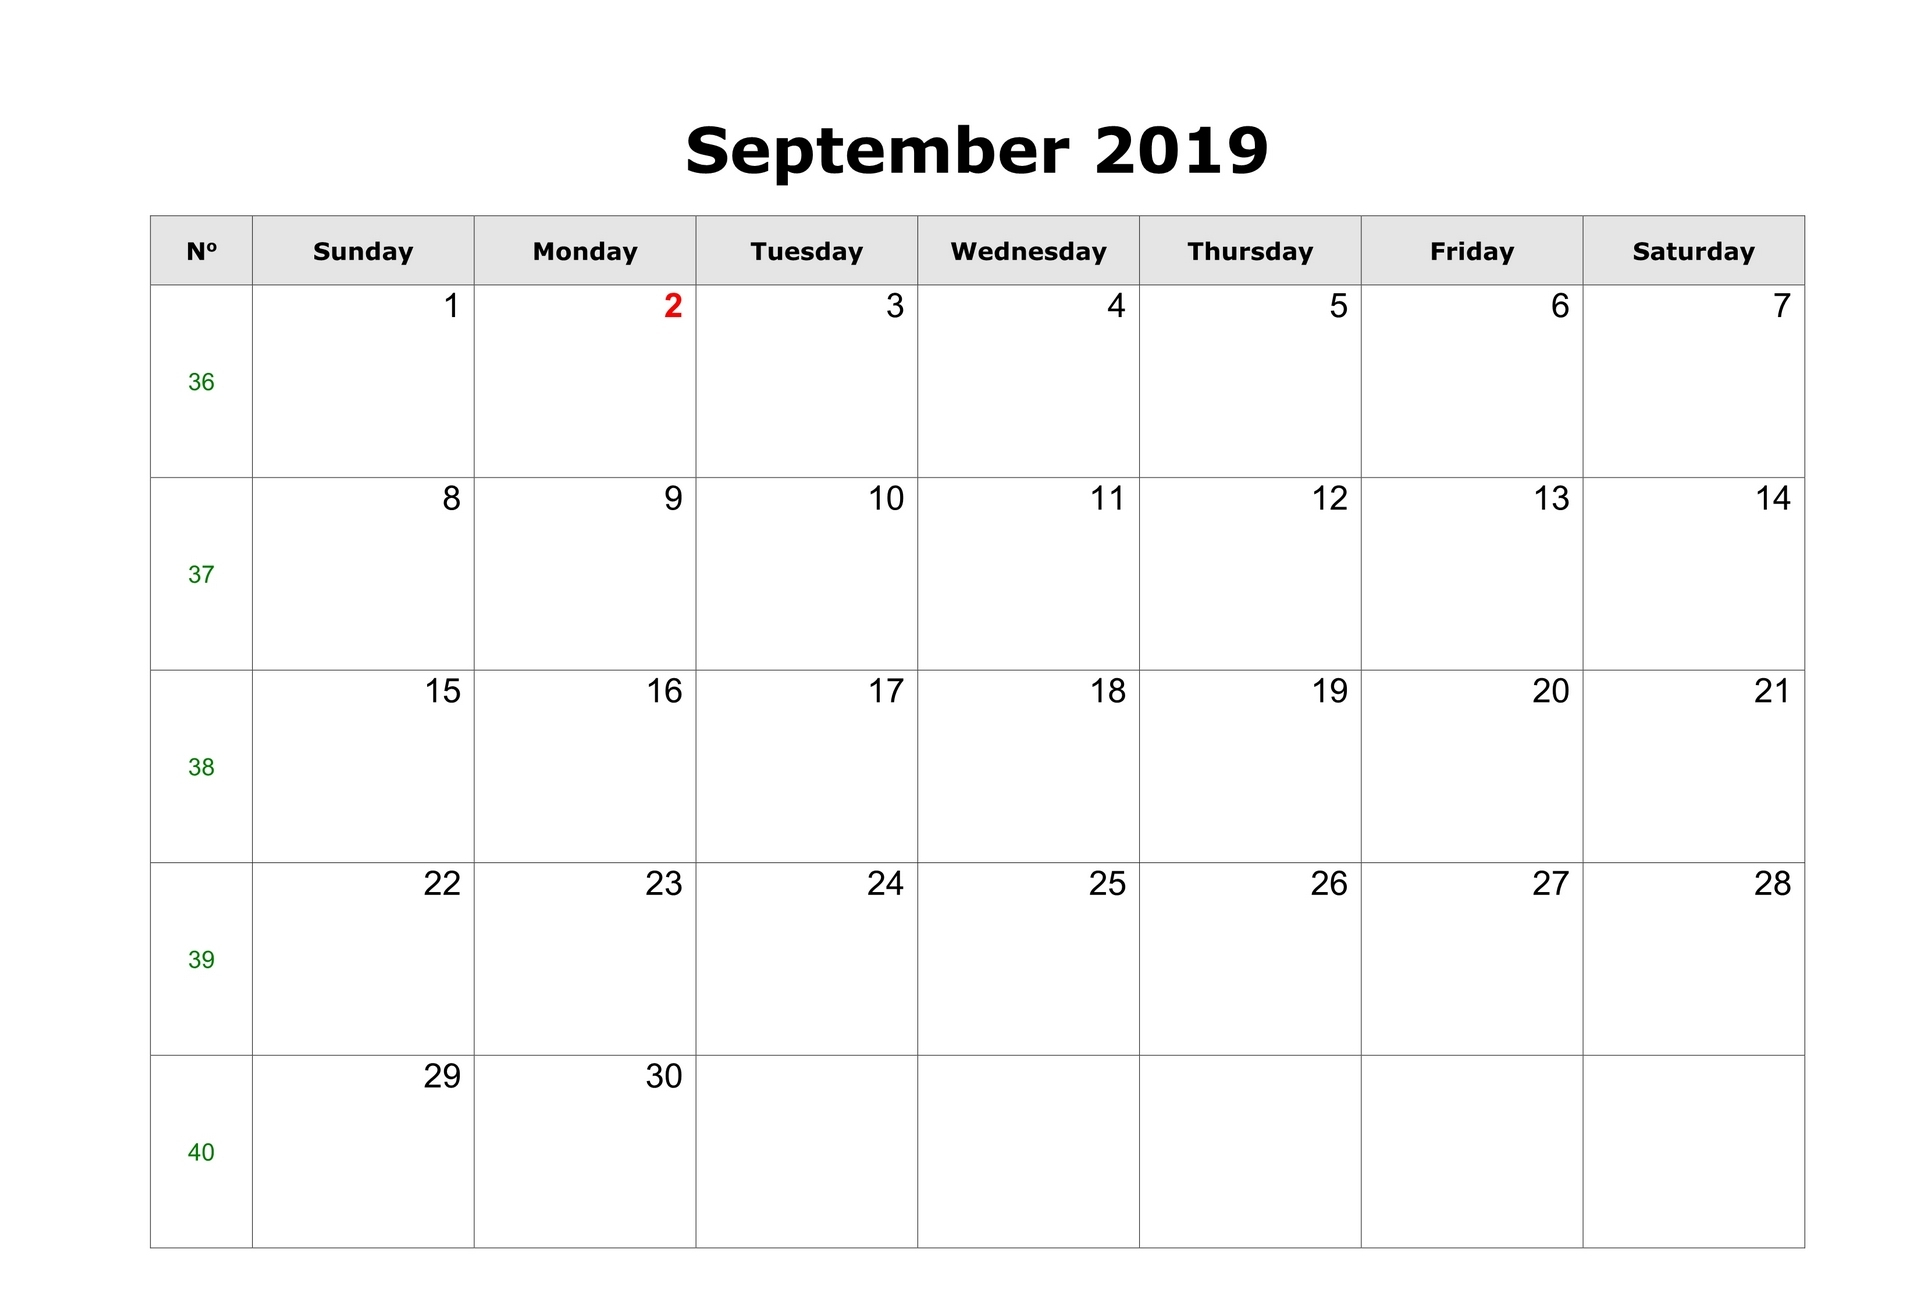 Fillable Calendar For September 2019 Printable Blank Template With Notes within Editable October 2019 Calendar With Religious Holidays